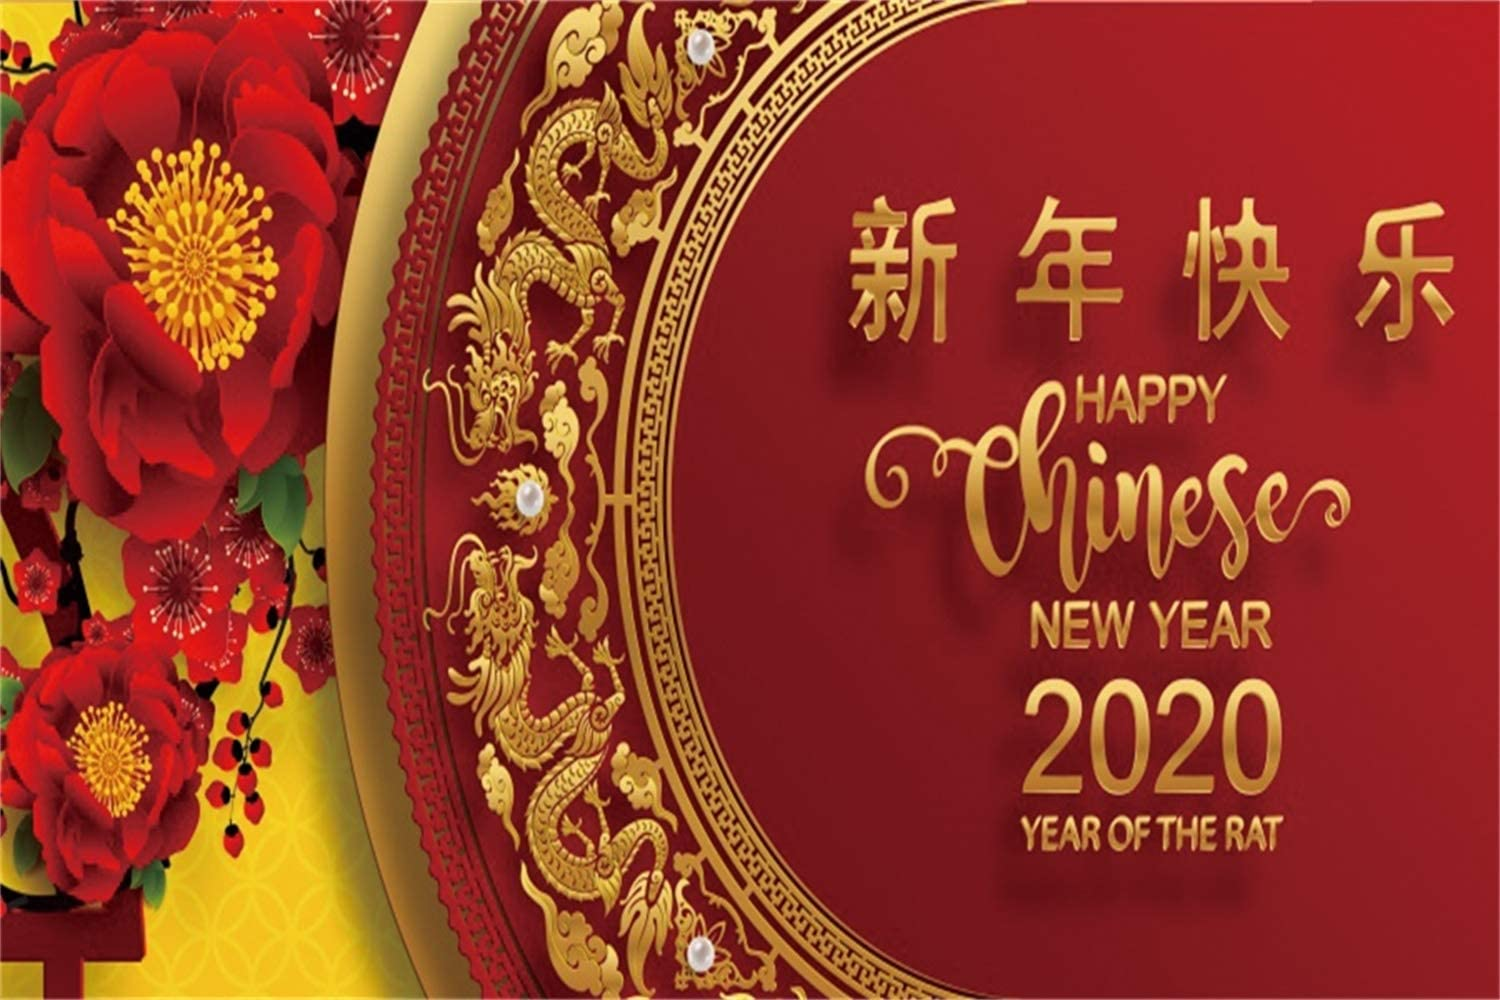 Leowefowa 20x10ft Happy Chinese New Year 2020 Year of The Rat Backdrop for Photography Vinyl Chinese Style Golden Dragon Patterns Red Peony Flowers Background New Year Party Banner Greeting Card